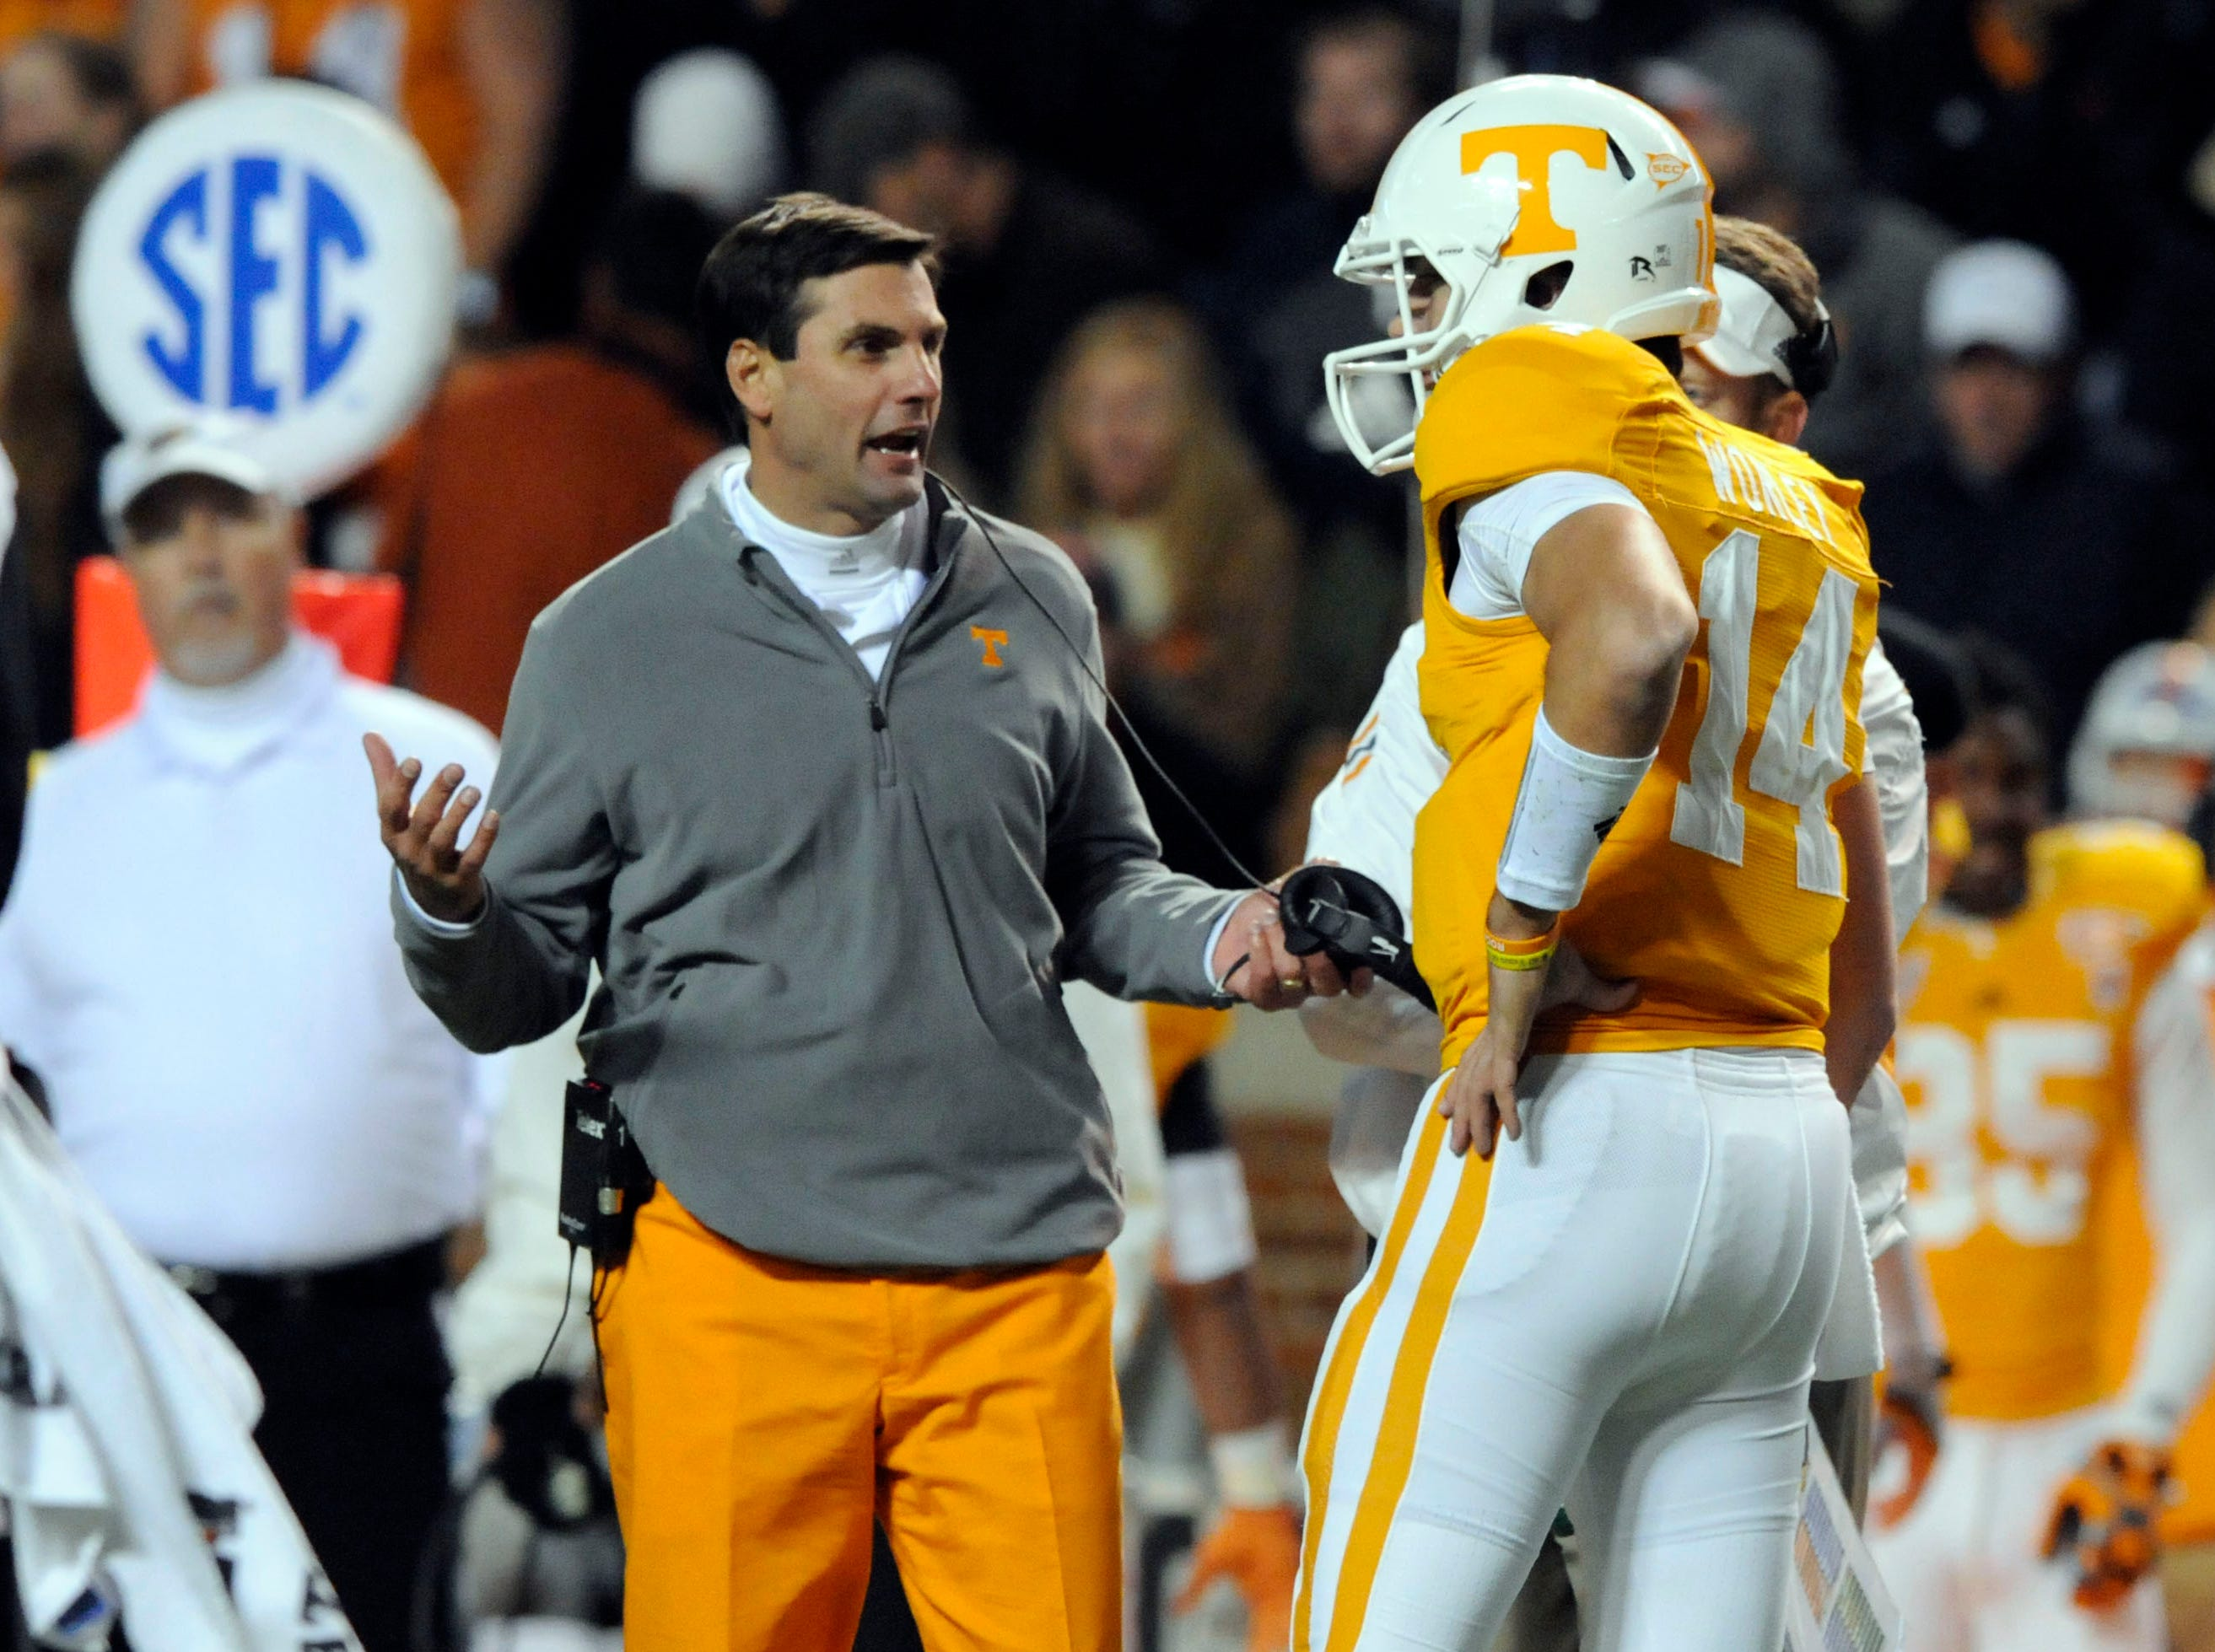 Tennessee head coach Derek Dooley talks with quarterback Justin Worley (14) during first half action against South Carolina at Neyland Stadium Saturday, Oct. 29, 2011.